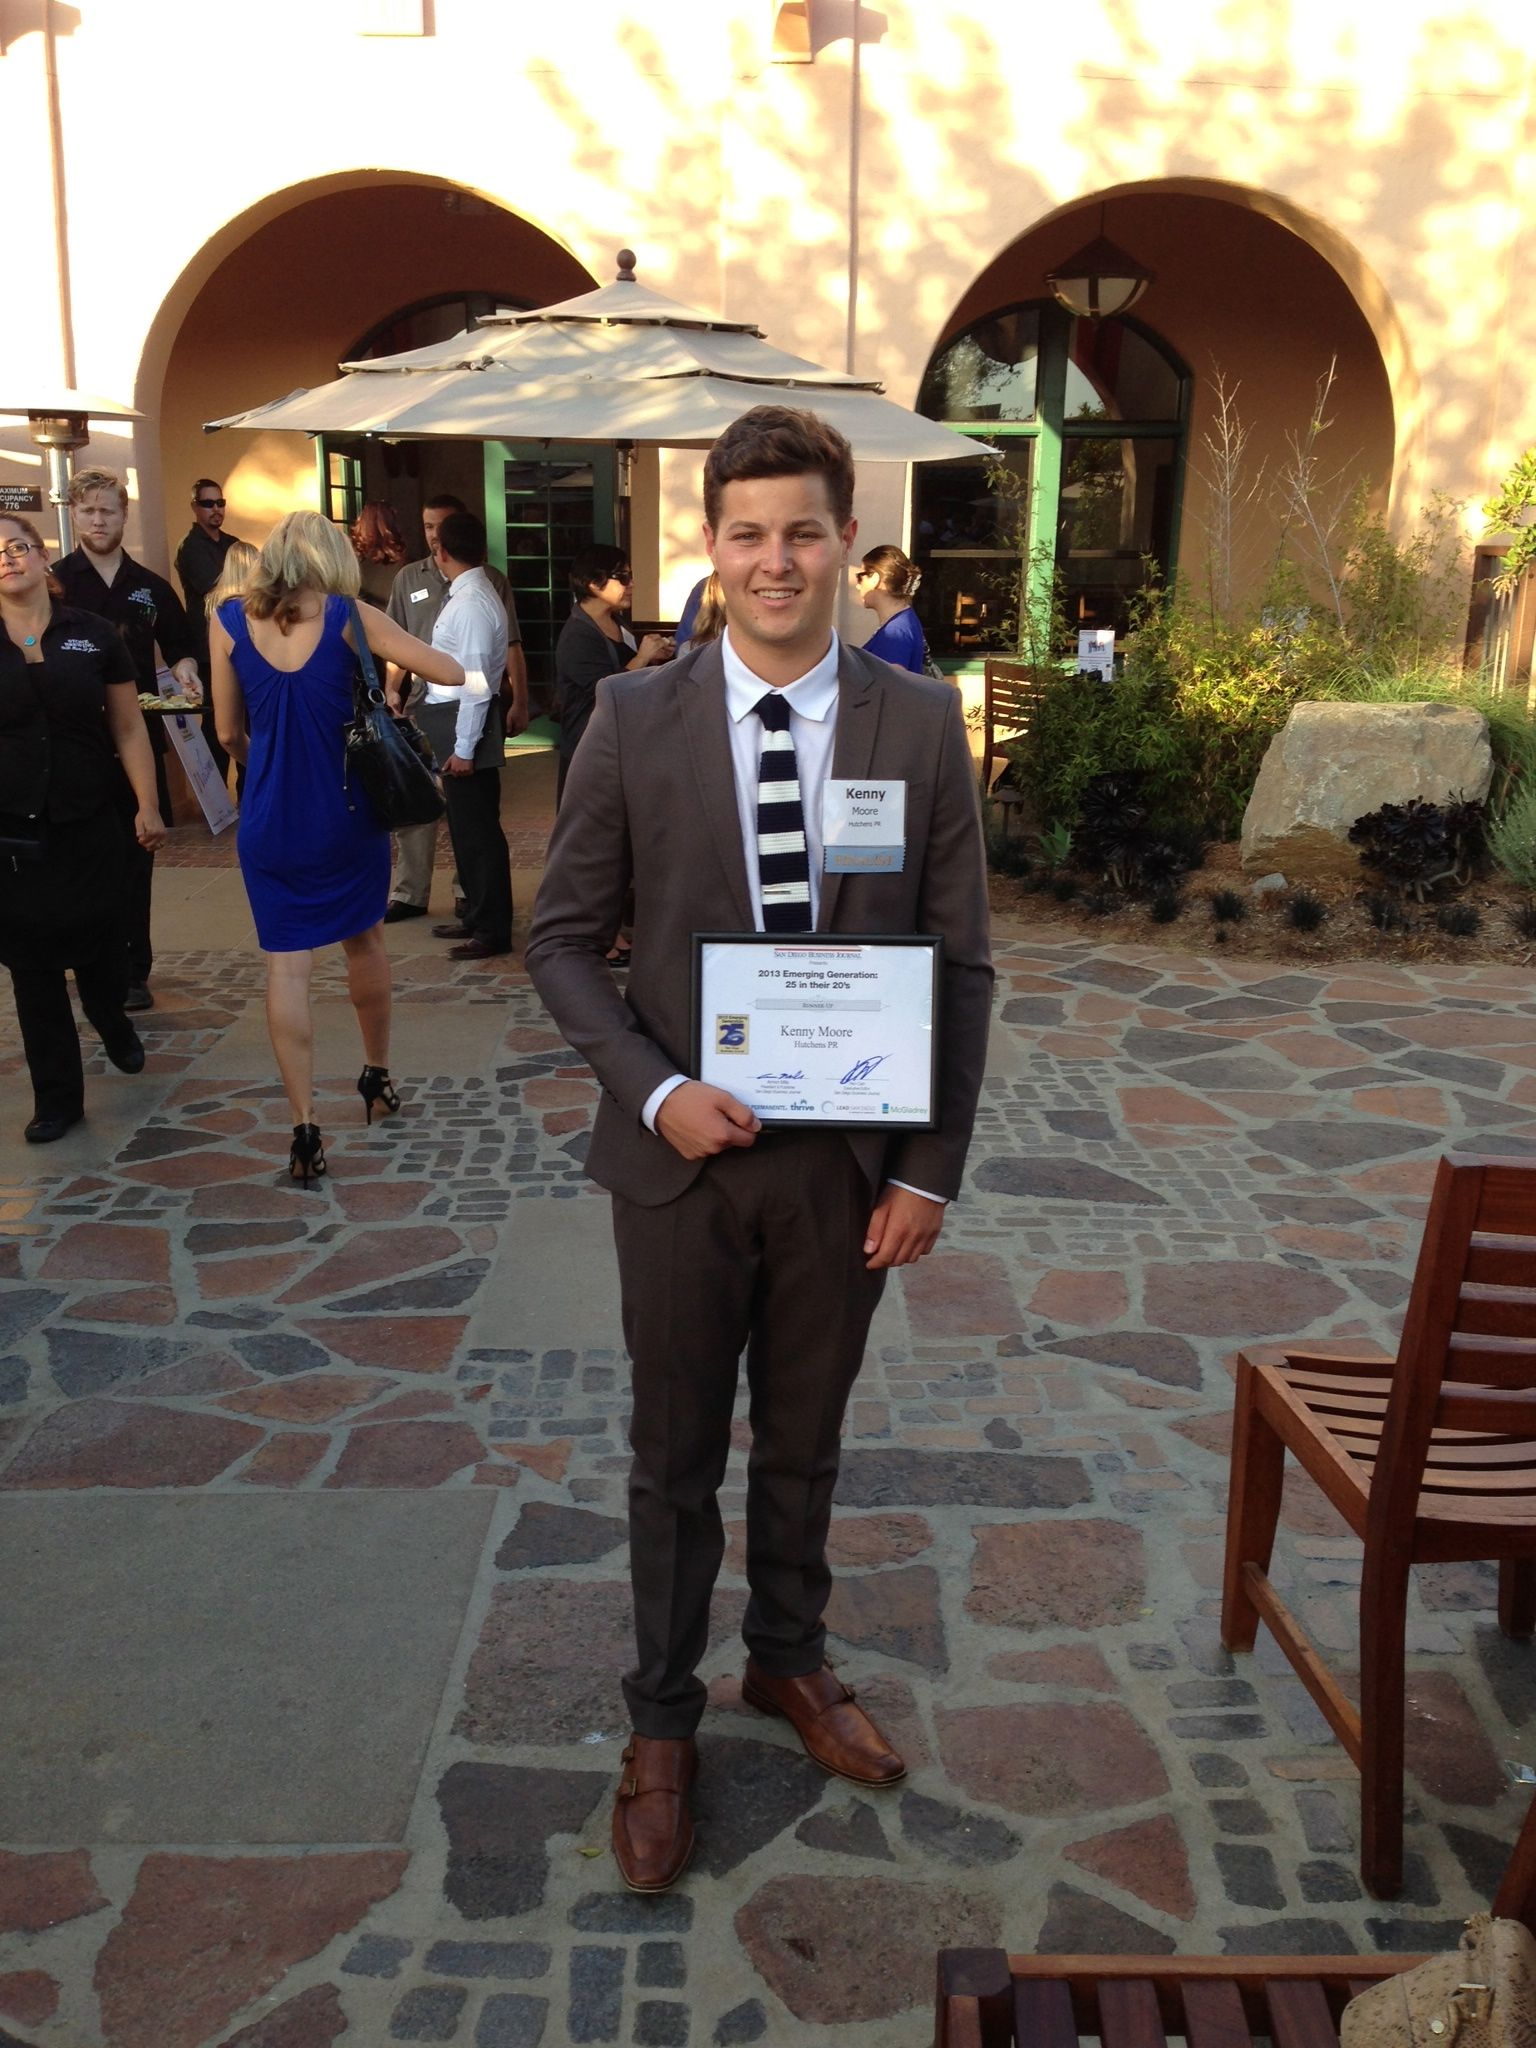 Congrats to our Account Coordinator, Kenny Moore who was named Finalist Runner Up for San Diego Business Journal's 2013 Emerging Generation: 25 in their 20's! Way to go!